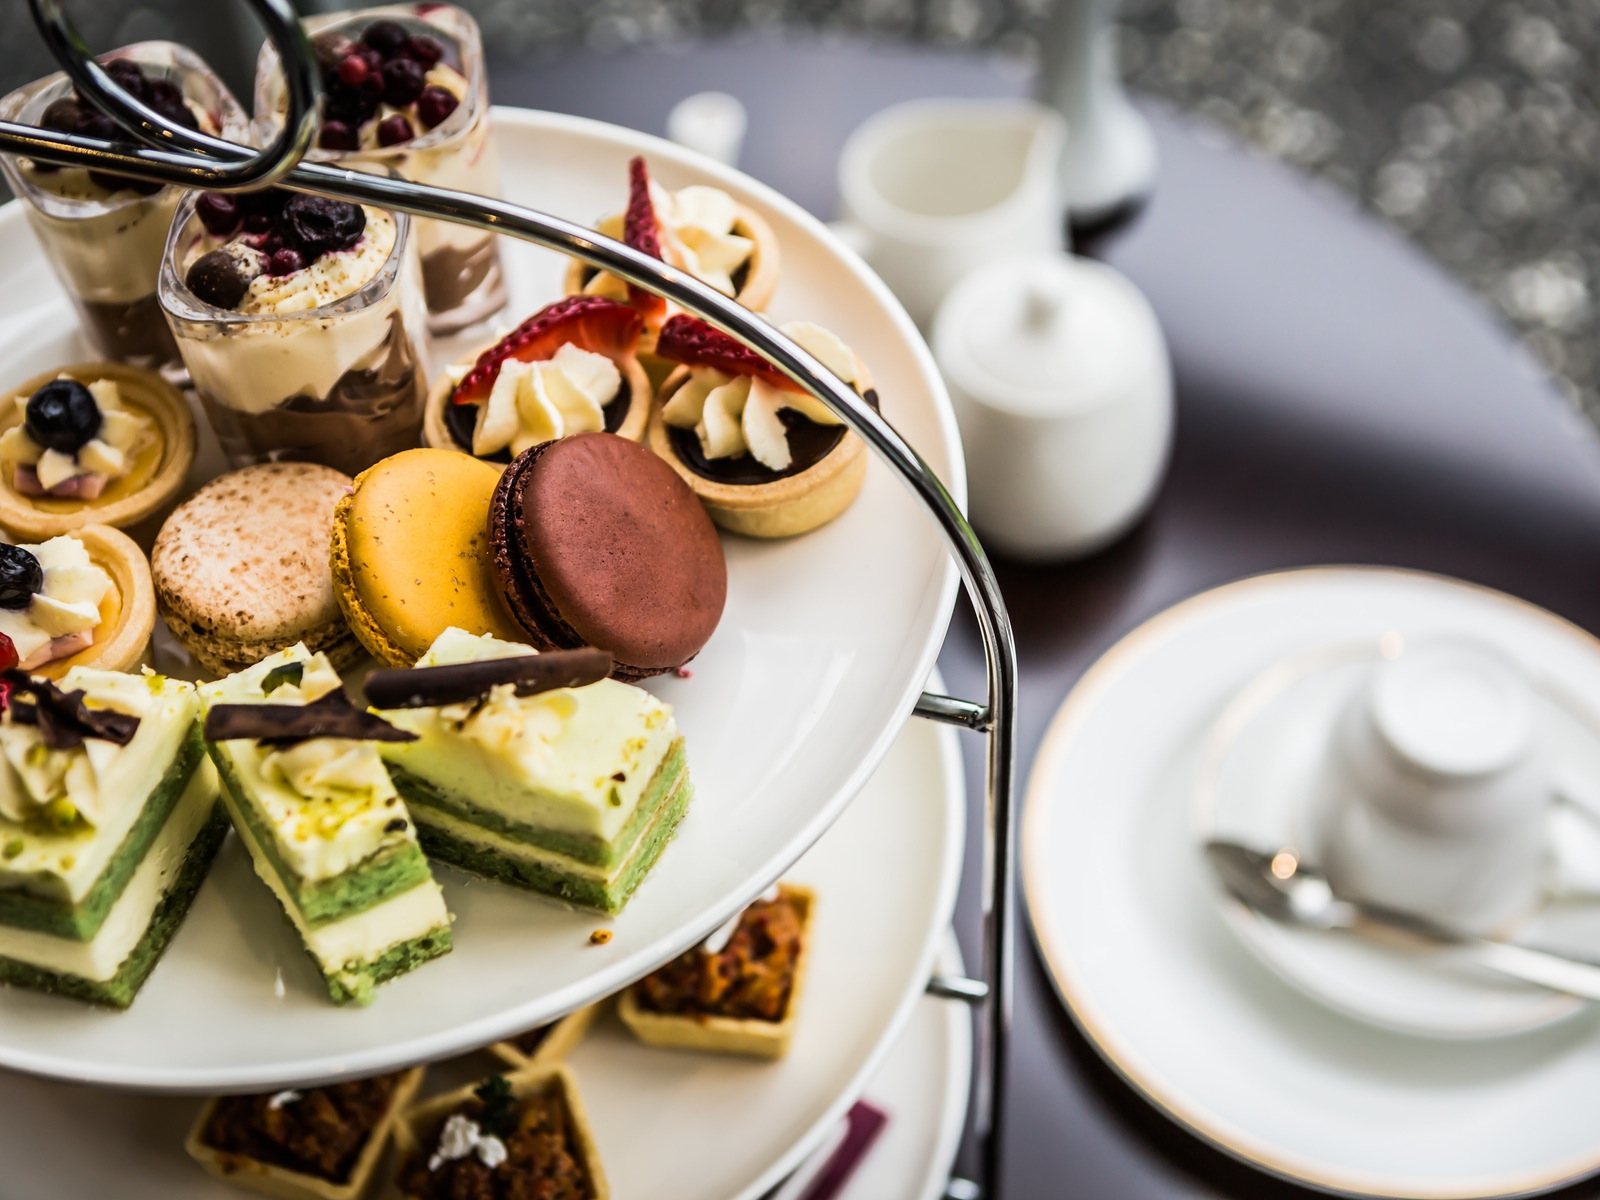 Foothills High Tea in the Yarra Valley